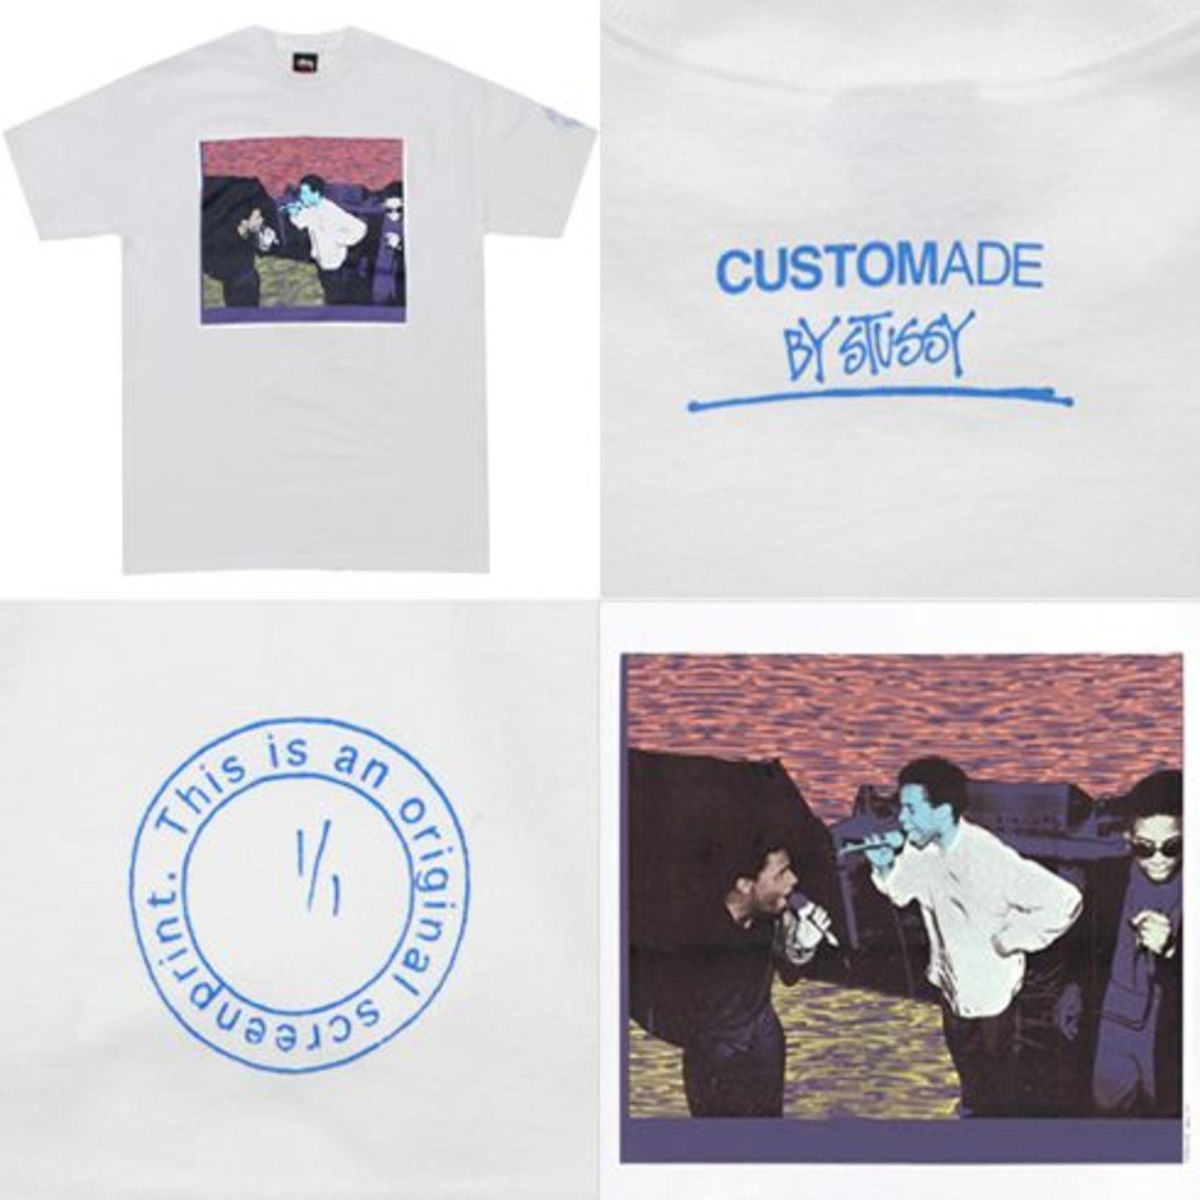 Stussy Direct - Stussy x Kate Gibb -  Customade Series - 3 MC's